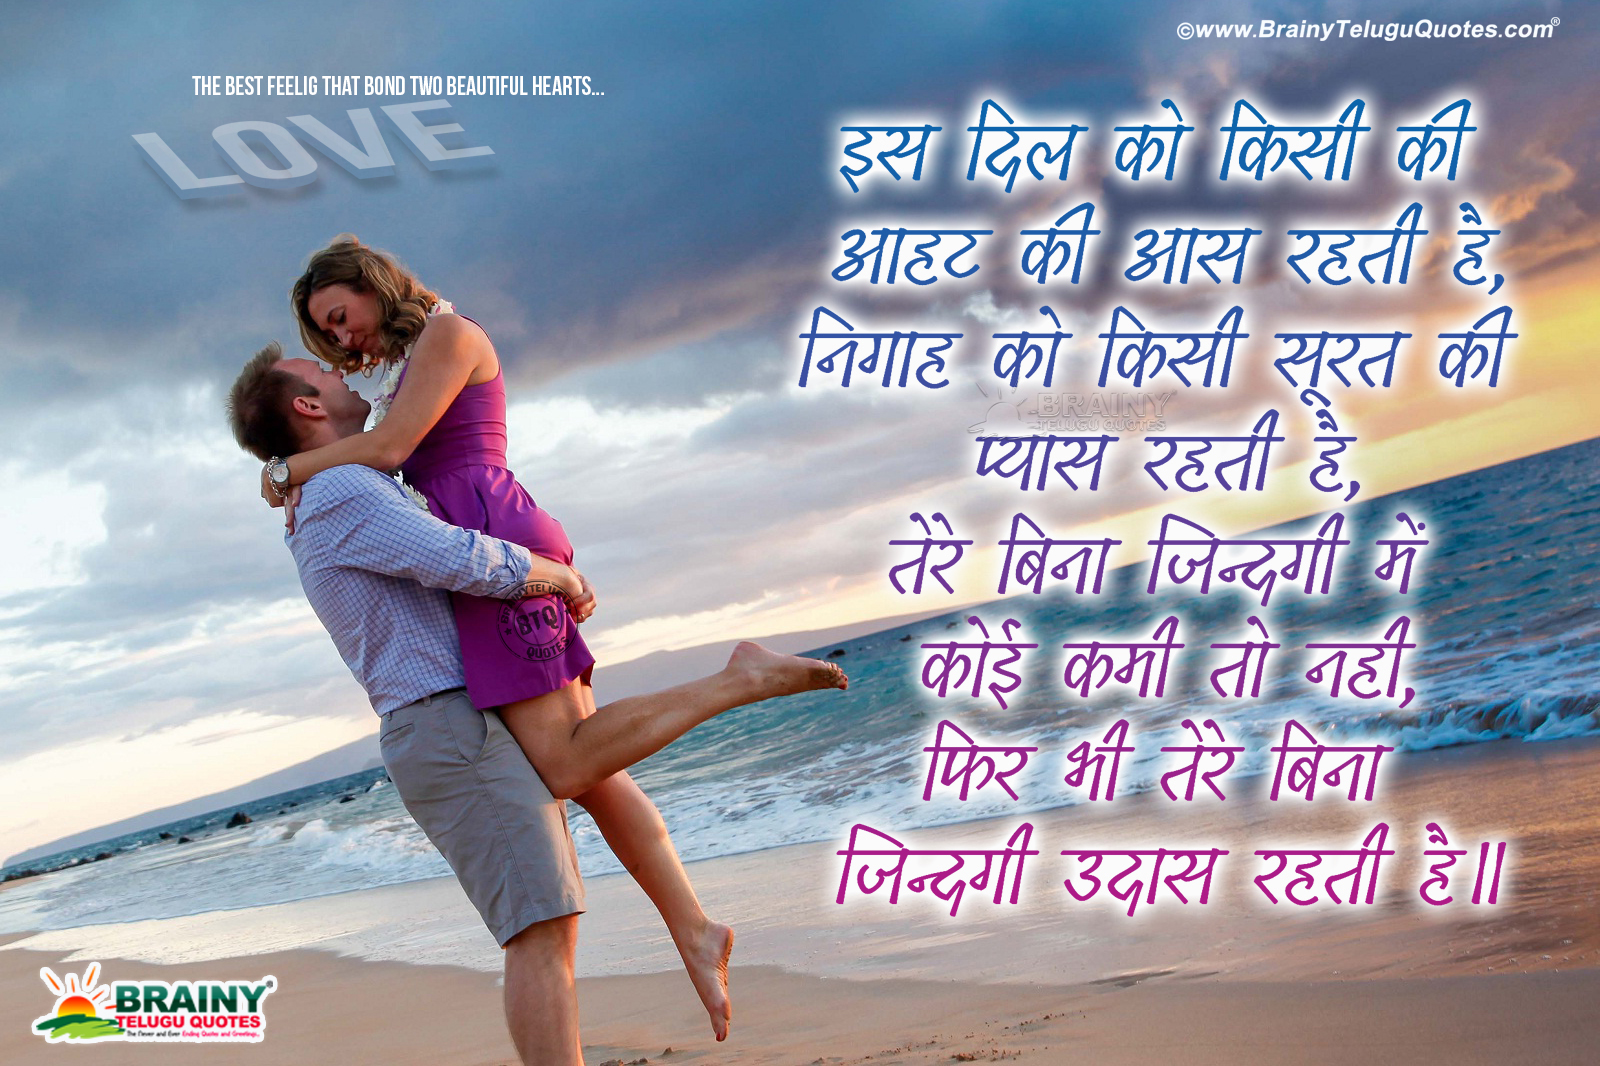 Romantic love shayari in hindi love quotes with couple hd - Best love shayari wallpaper ...